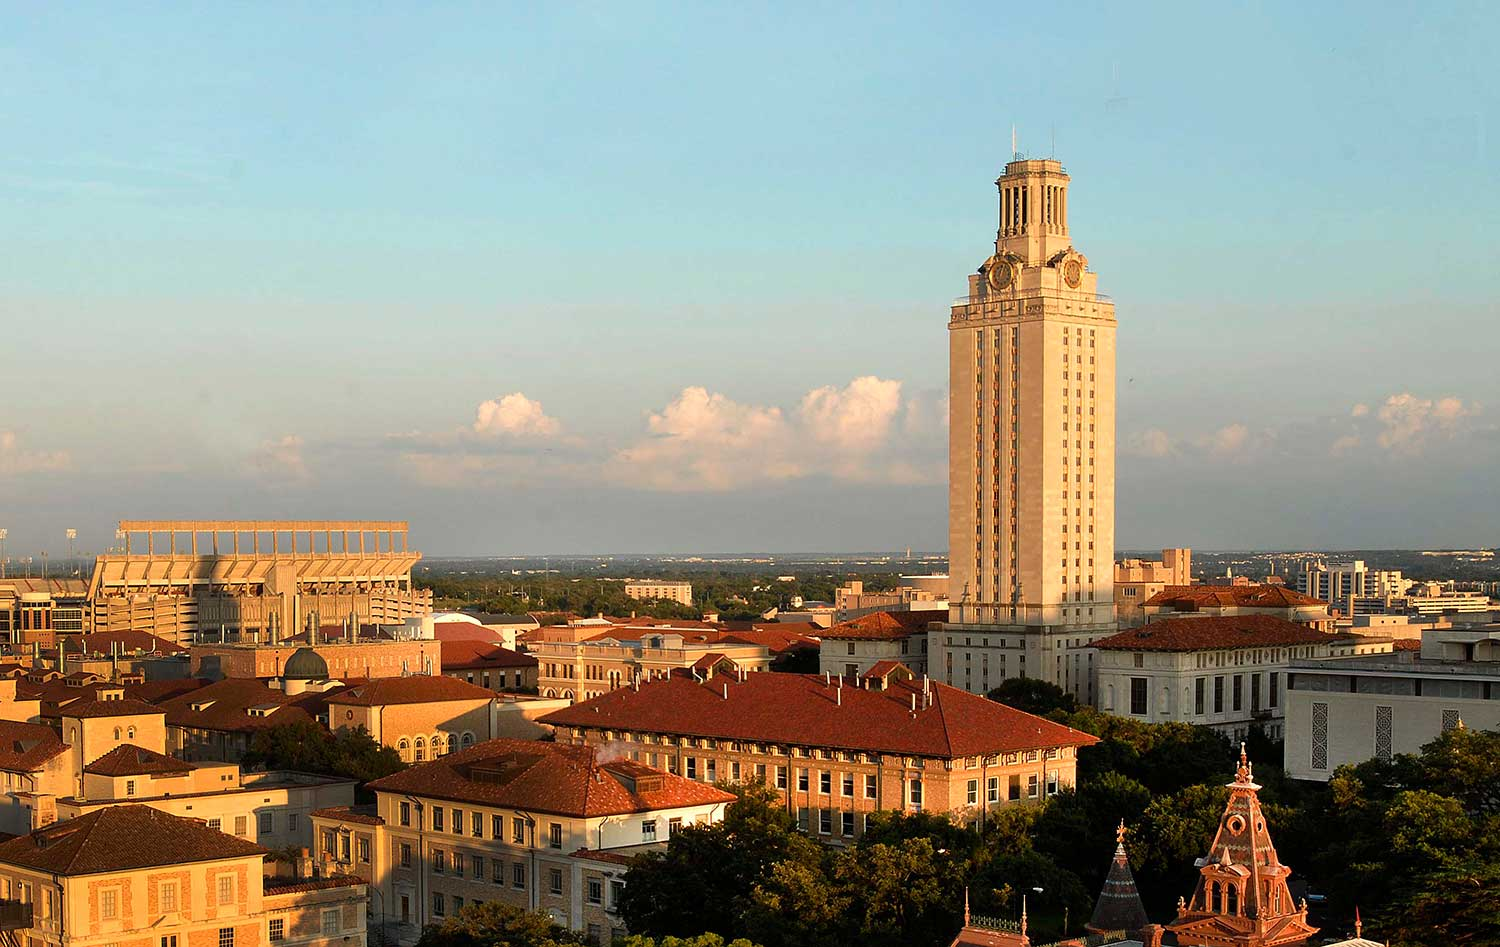 Wide shot of the UT Austin Tower and surrounding buildings at sunset